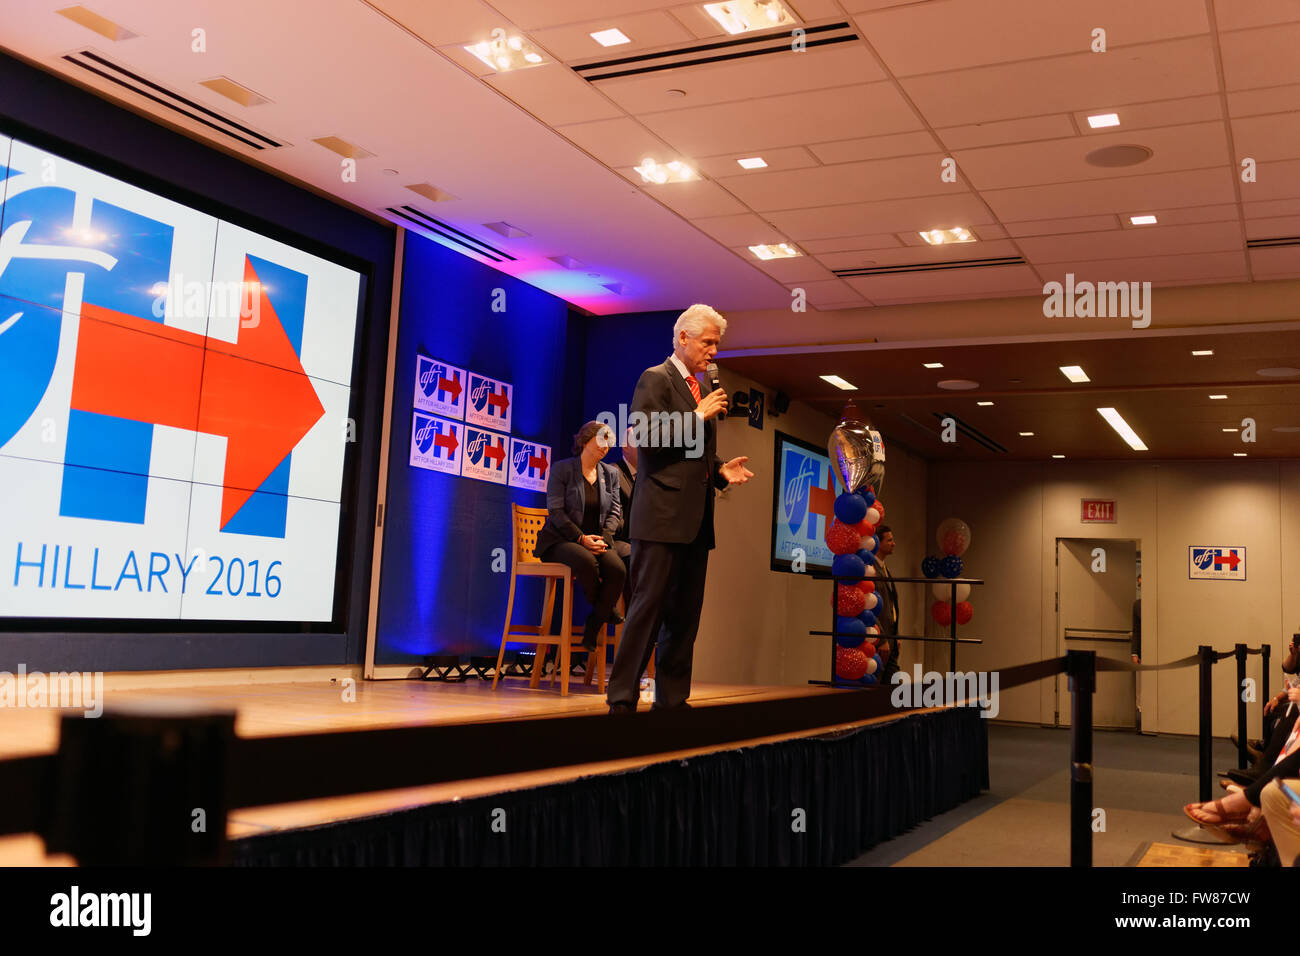 New York, NY, 31st March, 2016. Bill Clinton, former U.S. president, campaigned for his wife, Hillary, who is running Stock Photo